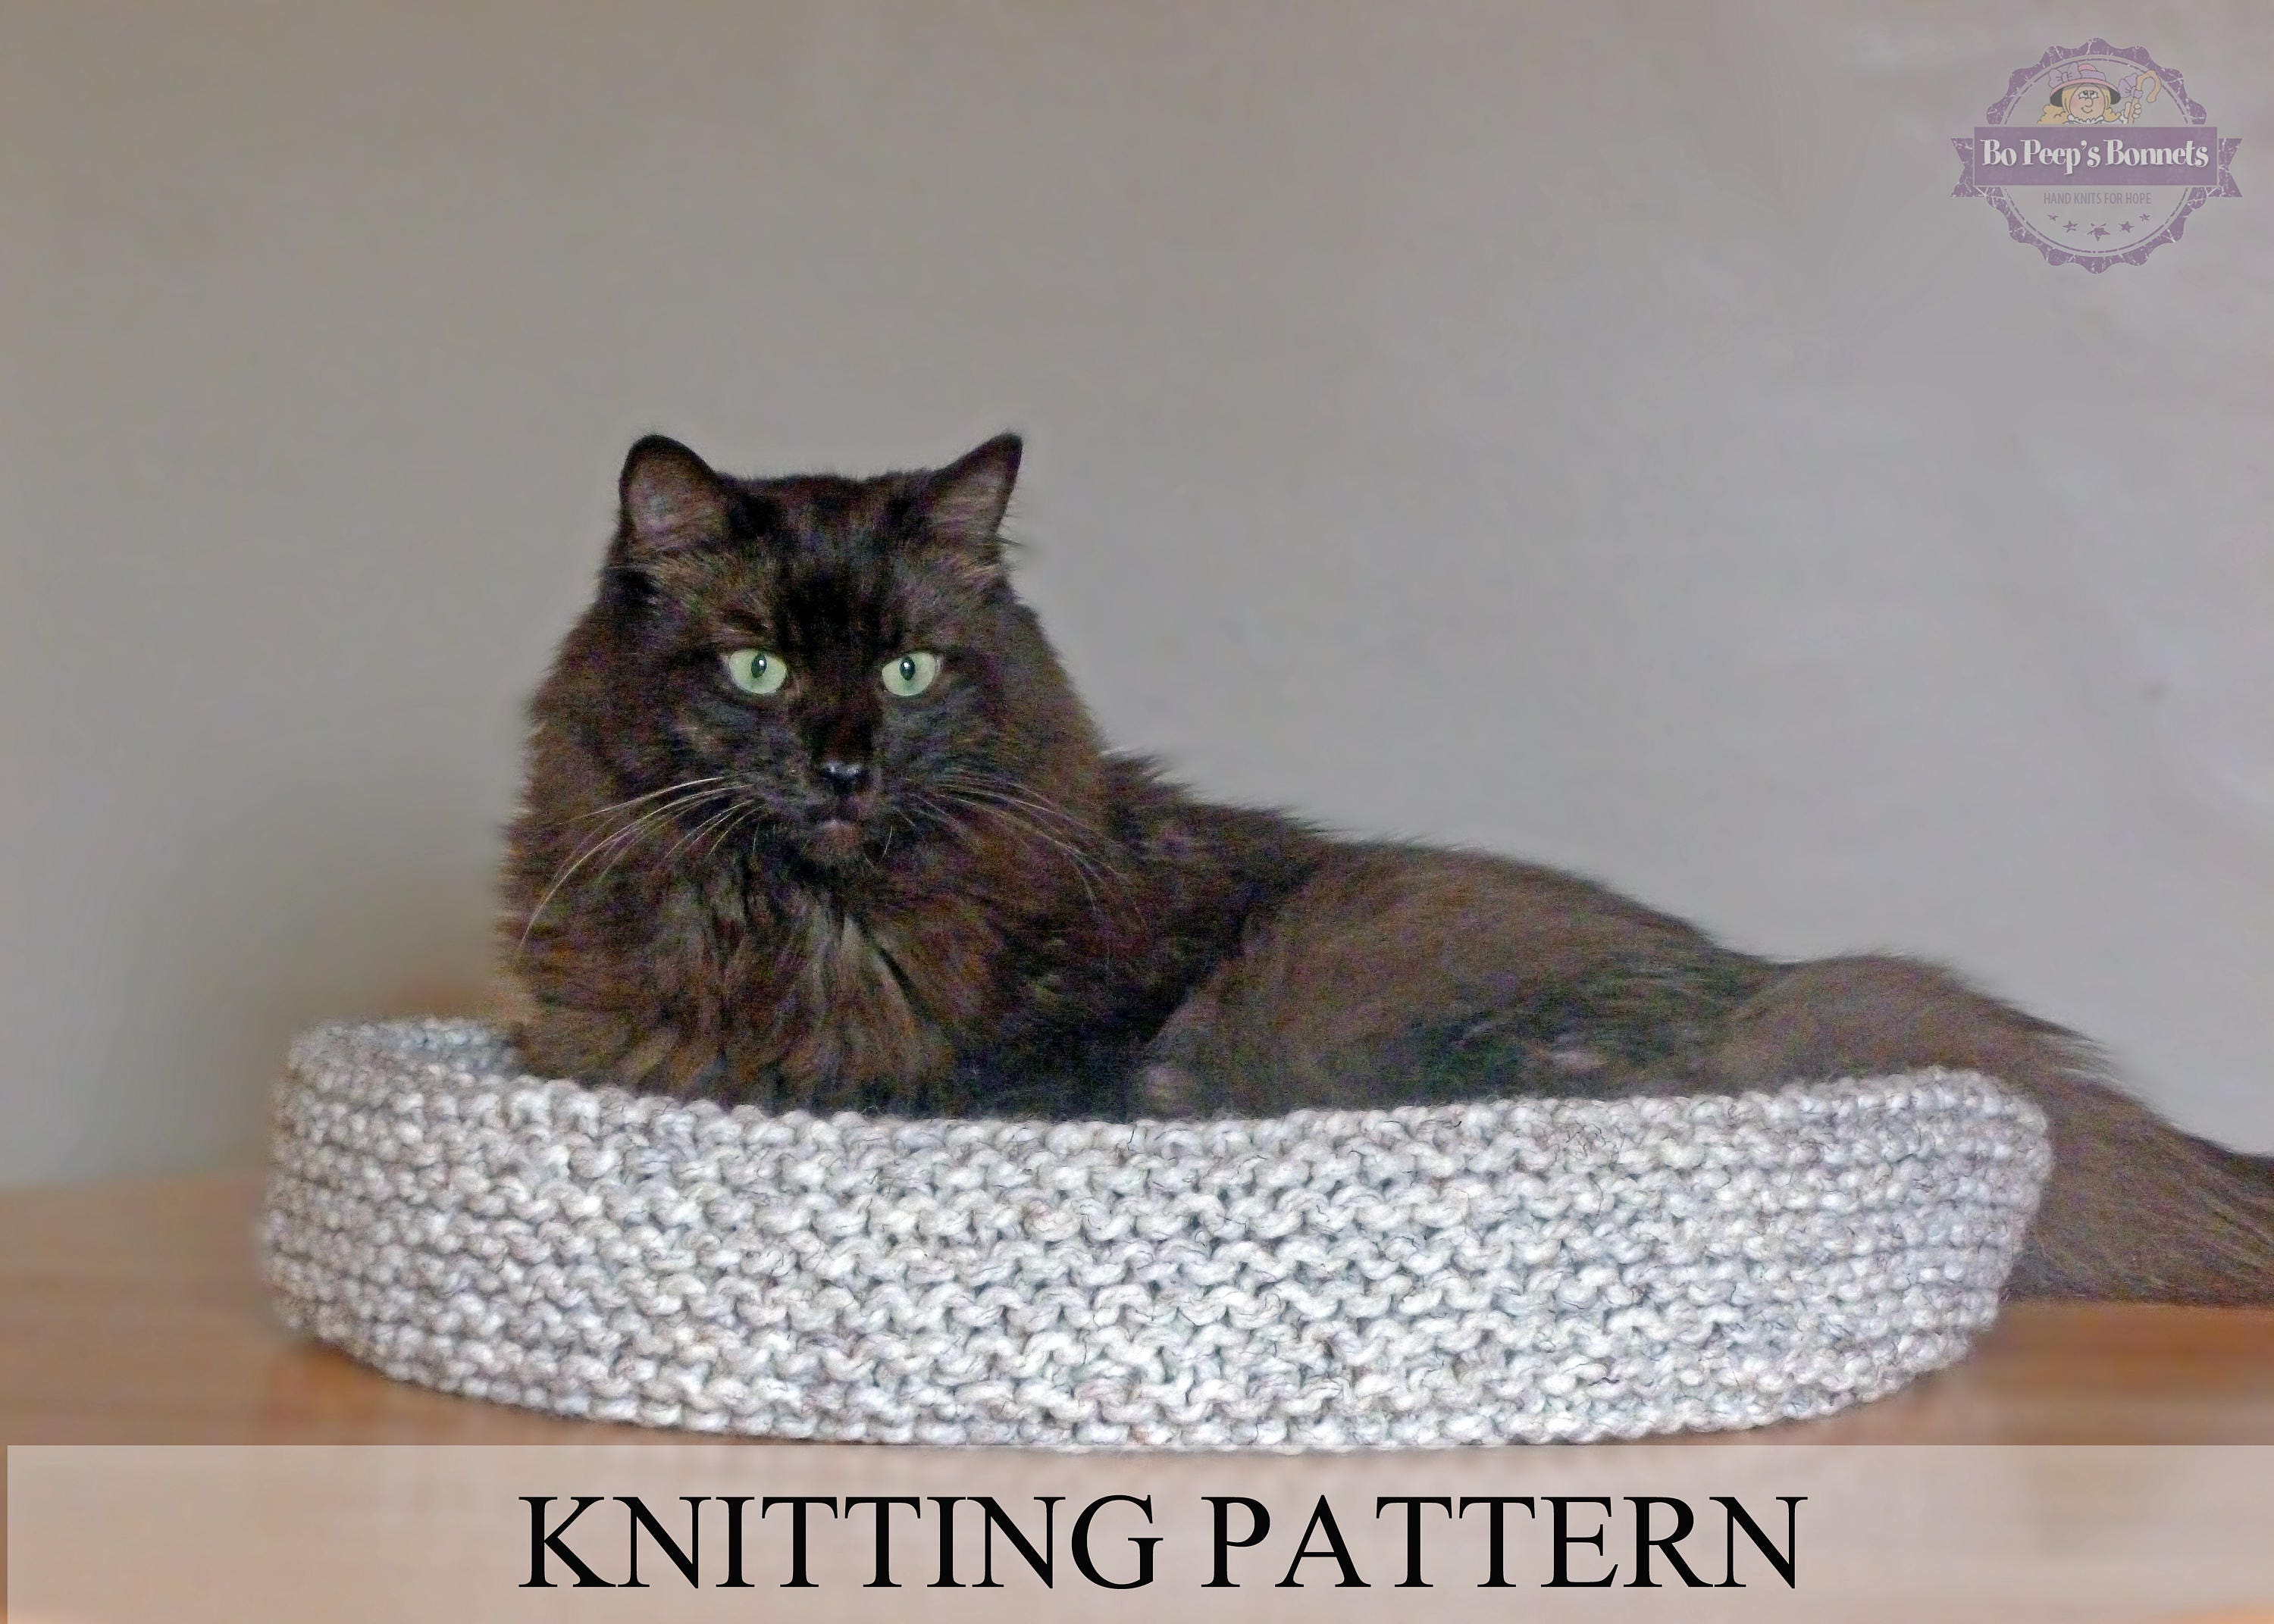 Cat Bed KNITTING PATTERN Knitted Cat Bed Tutorial DIY Cat